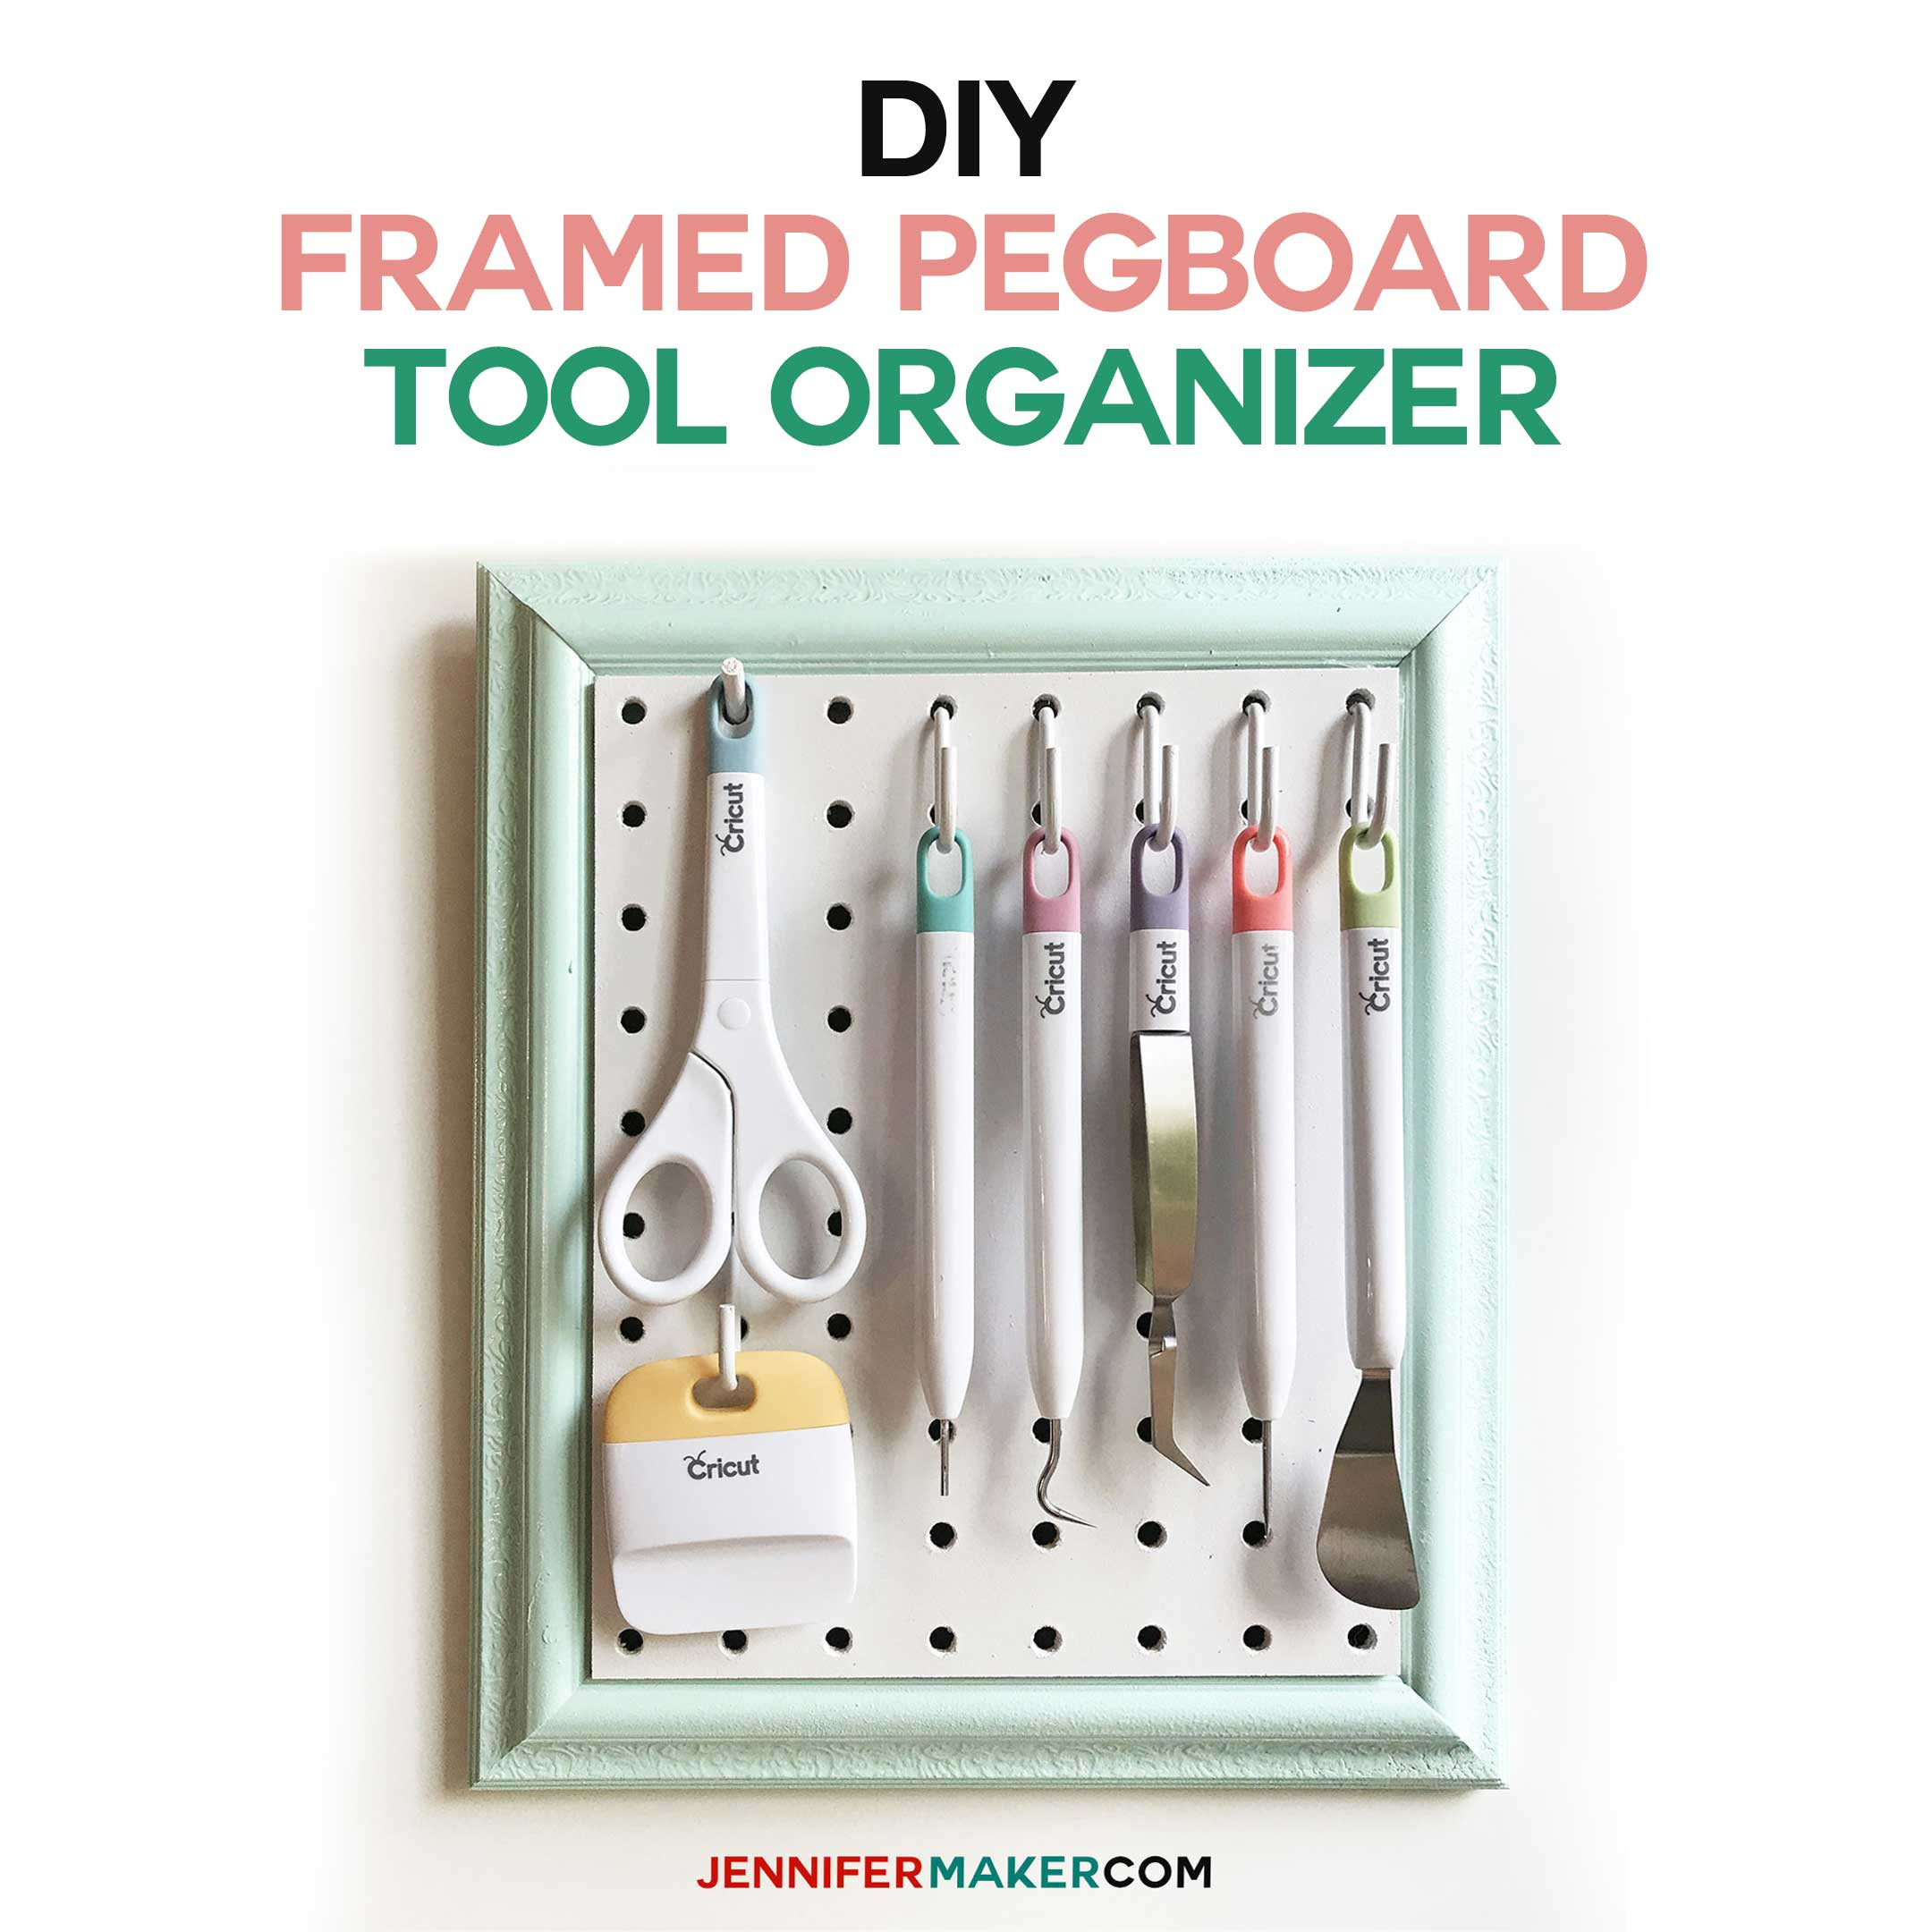 Best ideas about DIY Pegboard Tool Organizer . Save or Pin DIY Framed Pegboard Craft Organizer for Tools Jennifer Maker Now.